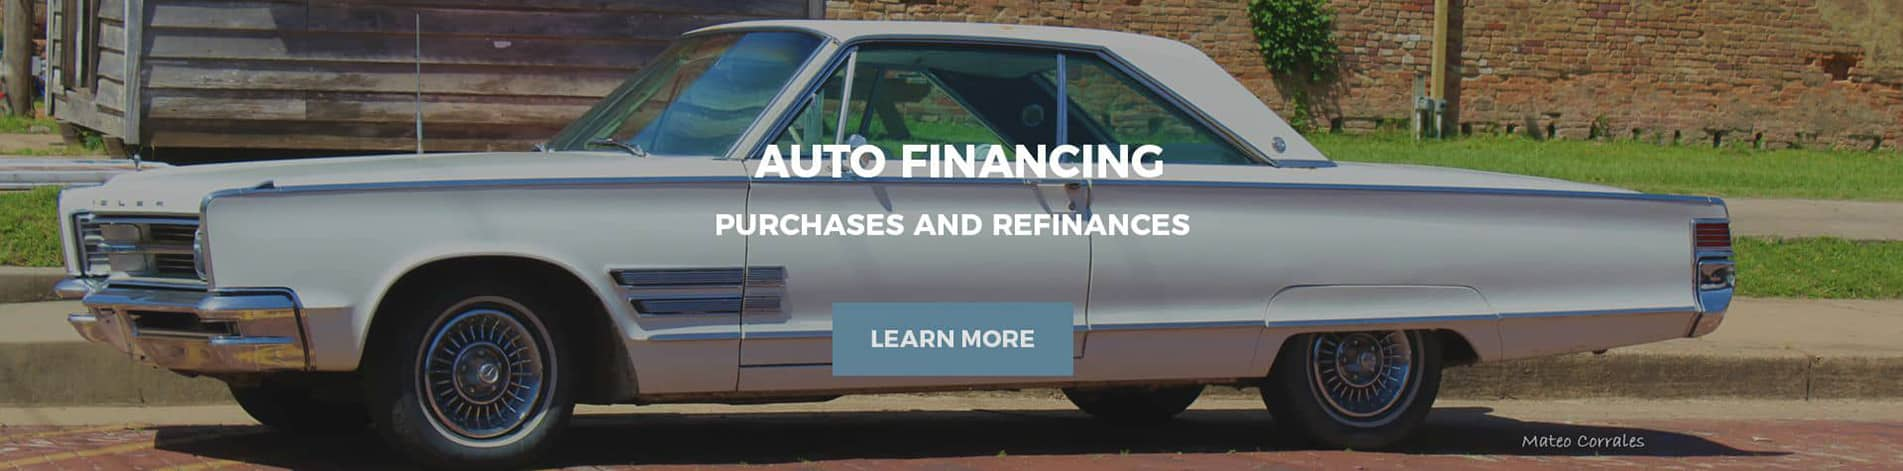 Auto Financing for new, used and low credit scores.